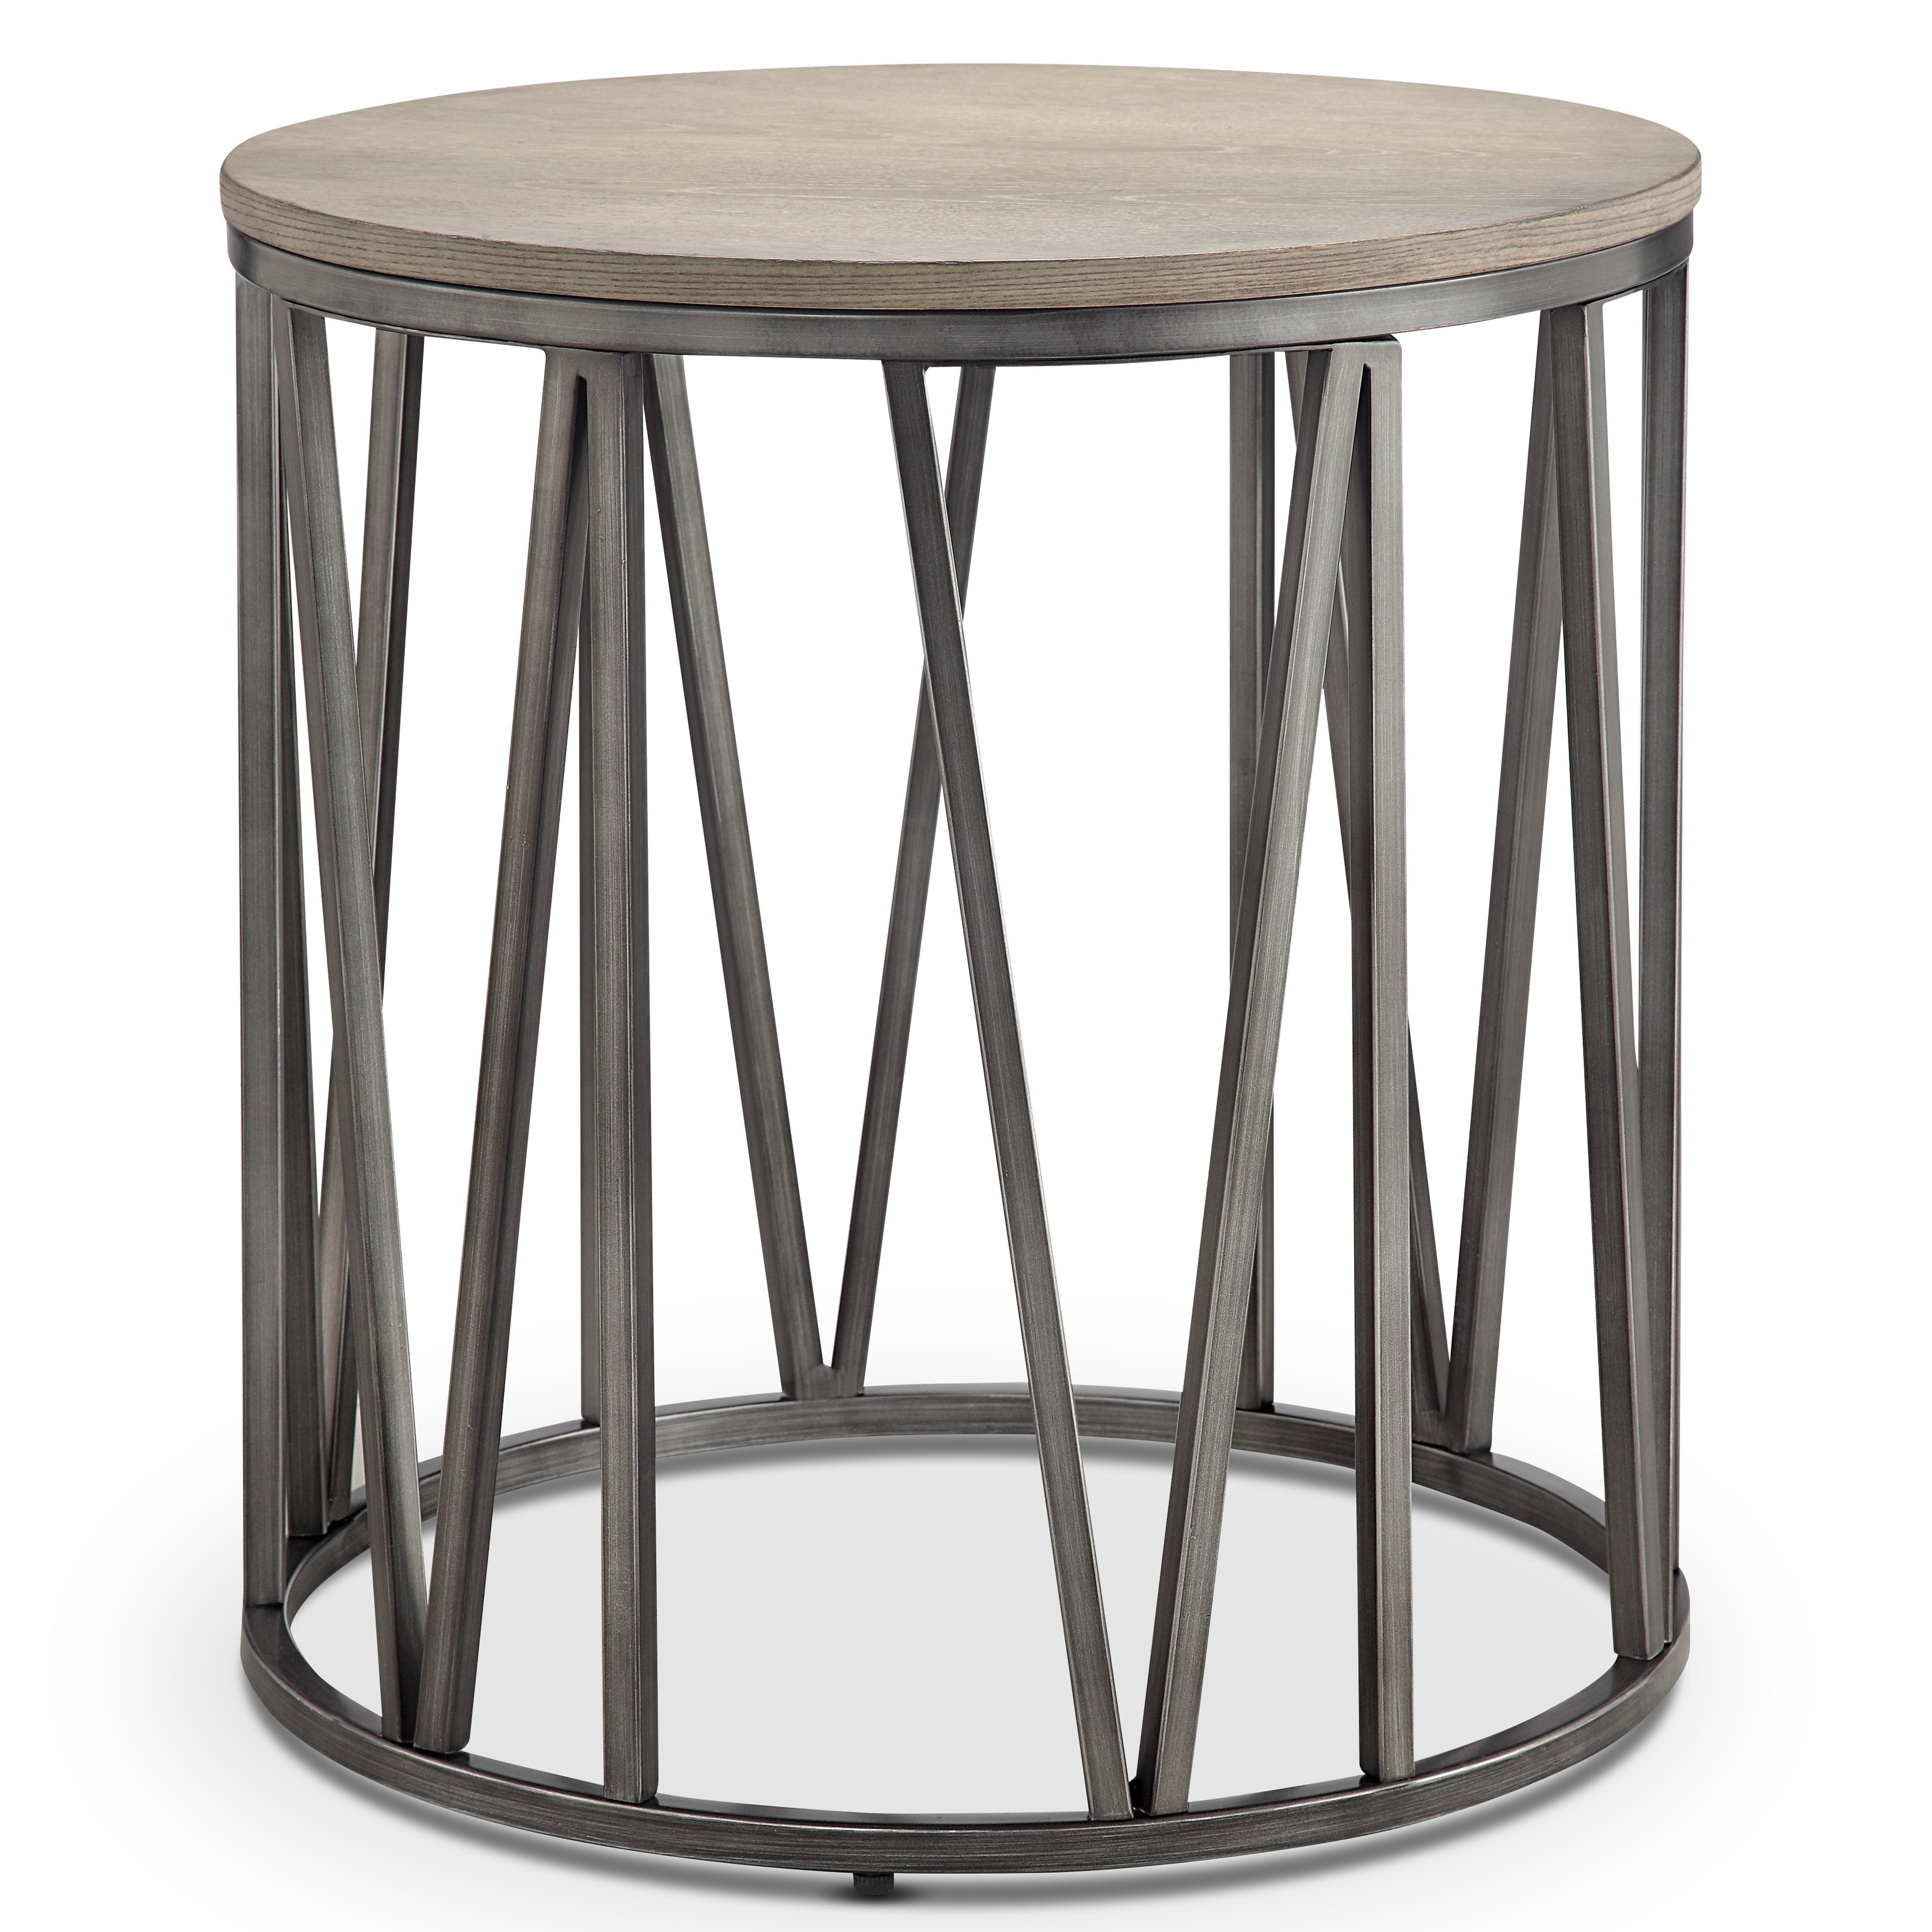 avalon modern weathered white oak round accent end table free shipping today set tables nest ethan allen ballan asian porcelain lamps west elm storage bench side designs with